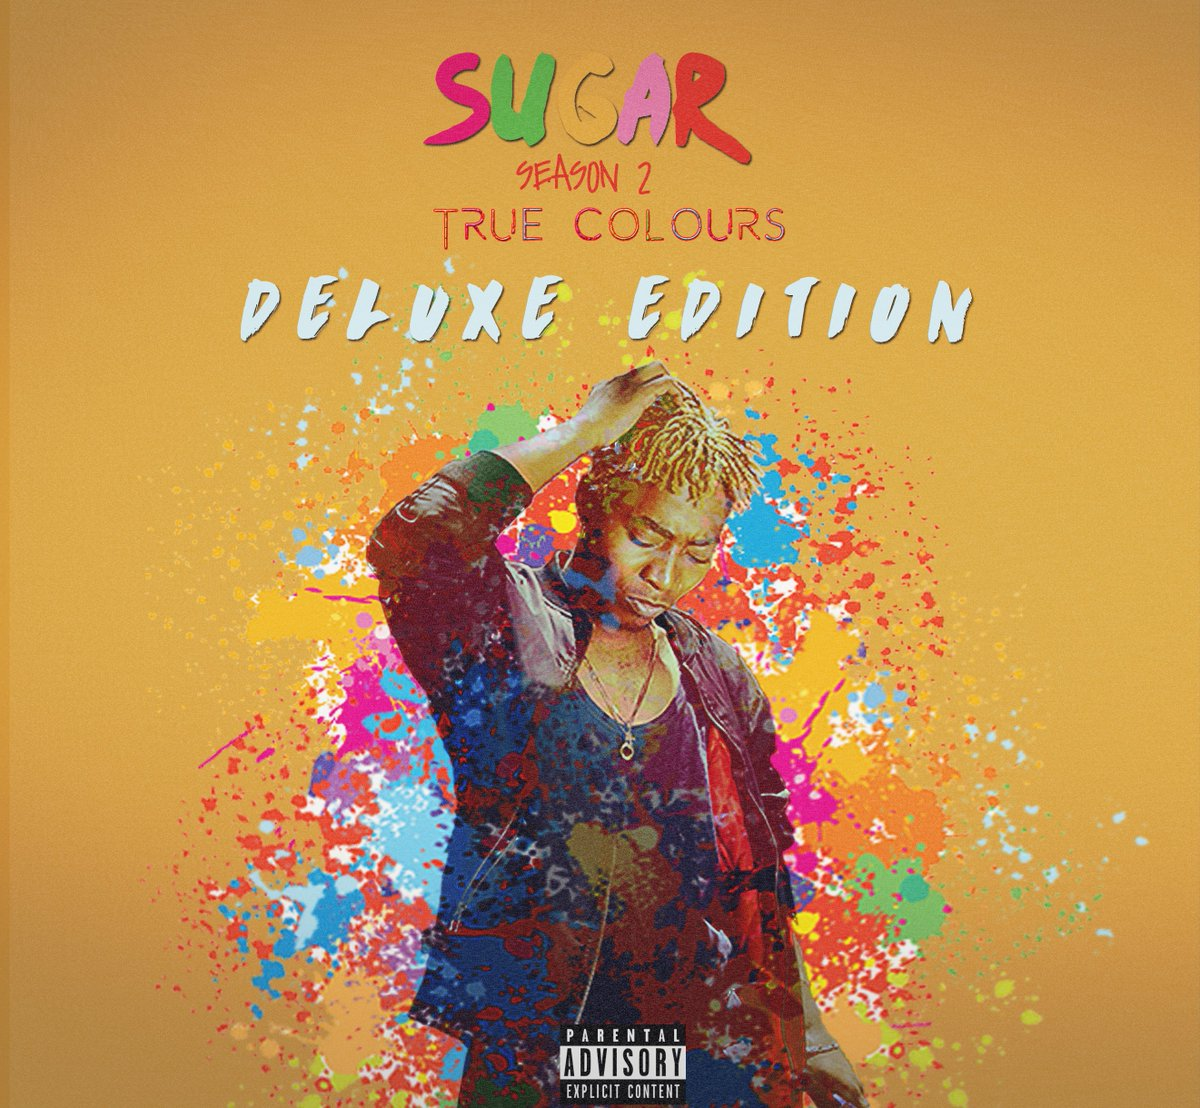 king sweetkid New King Sweetkid 'Sugar Season 2 : True Colours' (Deluxe Edition) Project Dropping Soon Dw2cUp4XQAA2aPR